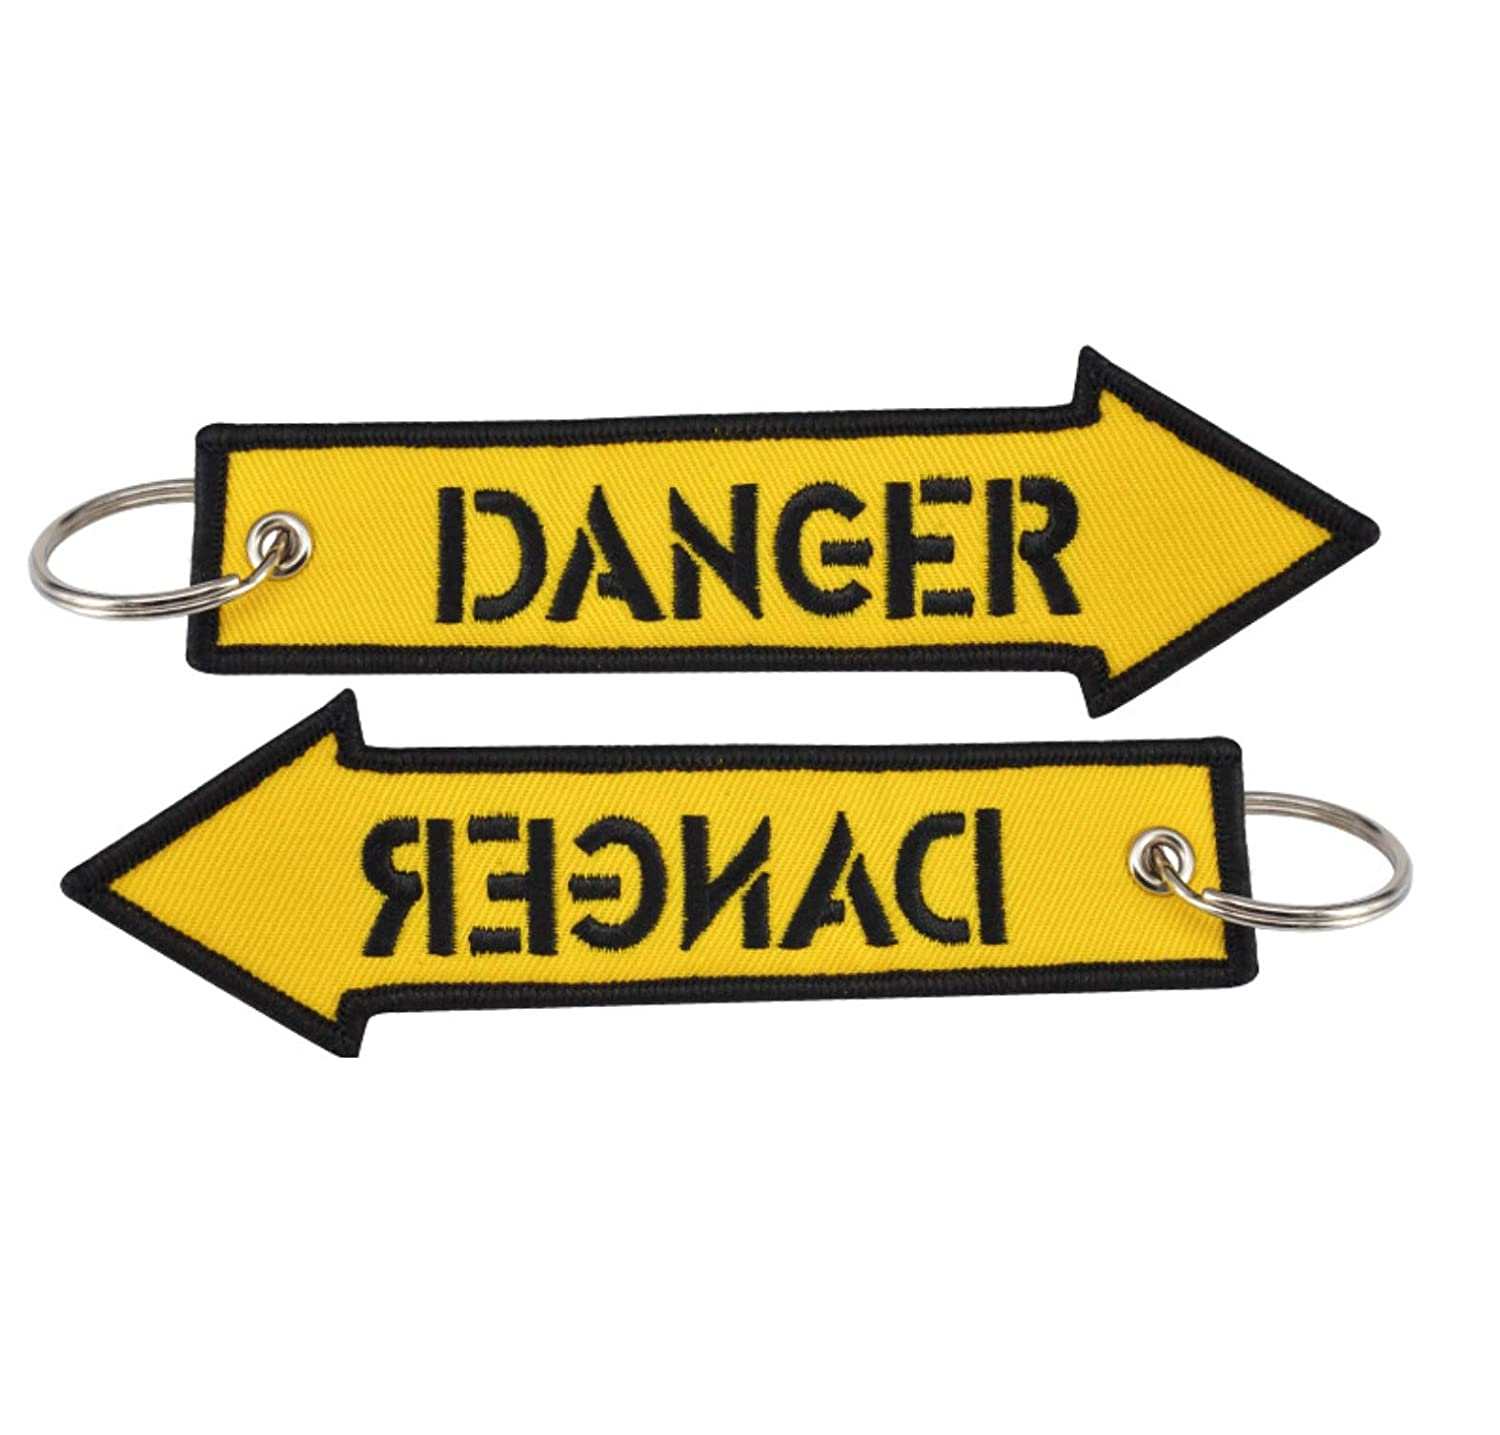 Amazon.com: danger keychain set of 2 key chain car jdm ...